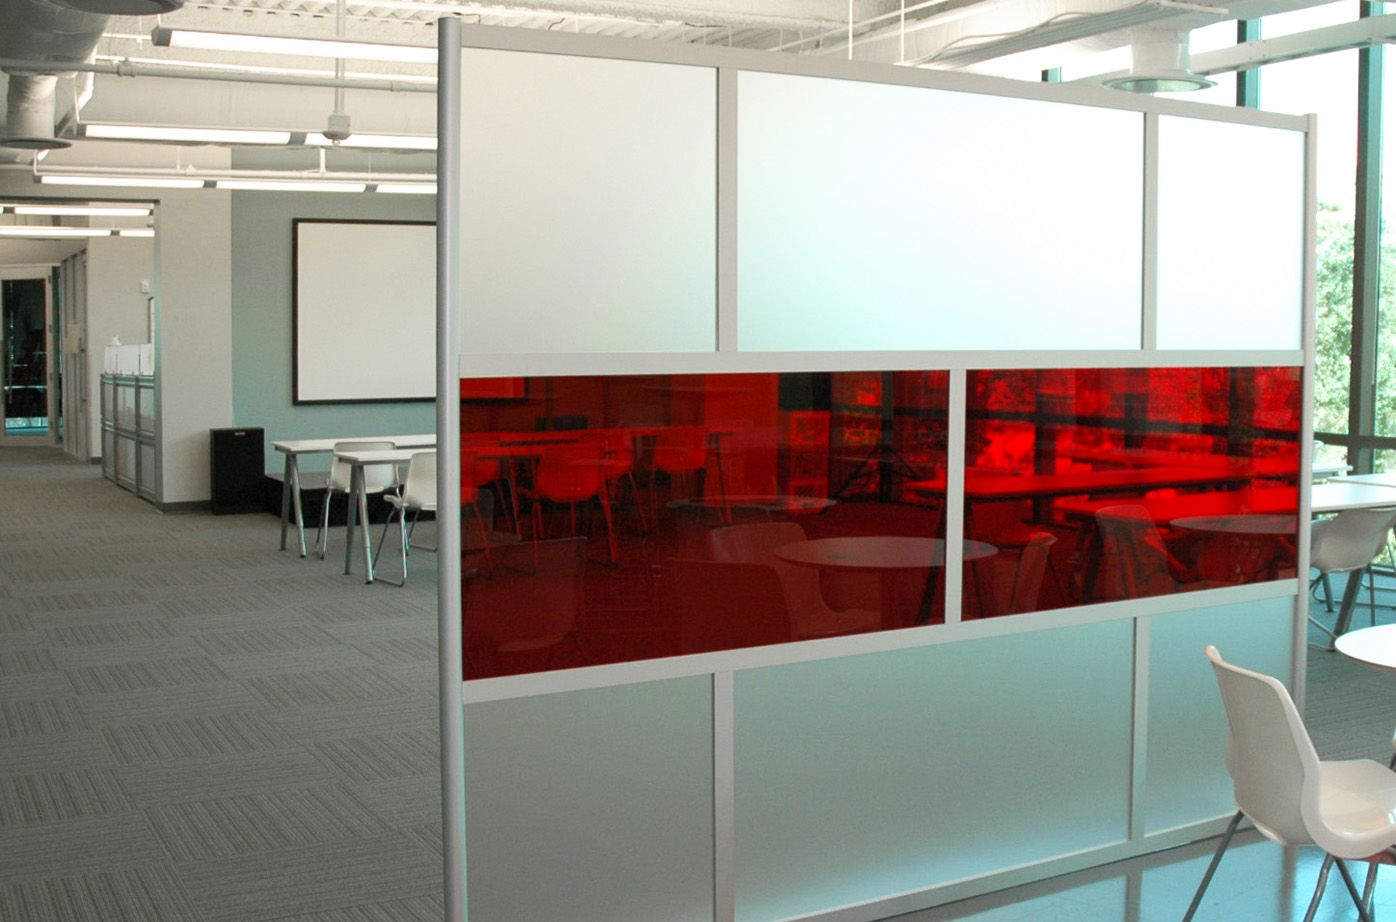 Free standing wall divider - Loftwall Design Your Own Freestanding Walls Can Do Ceiling Too